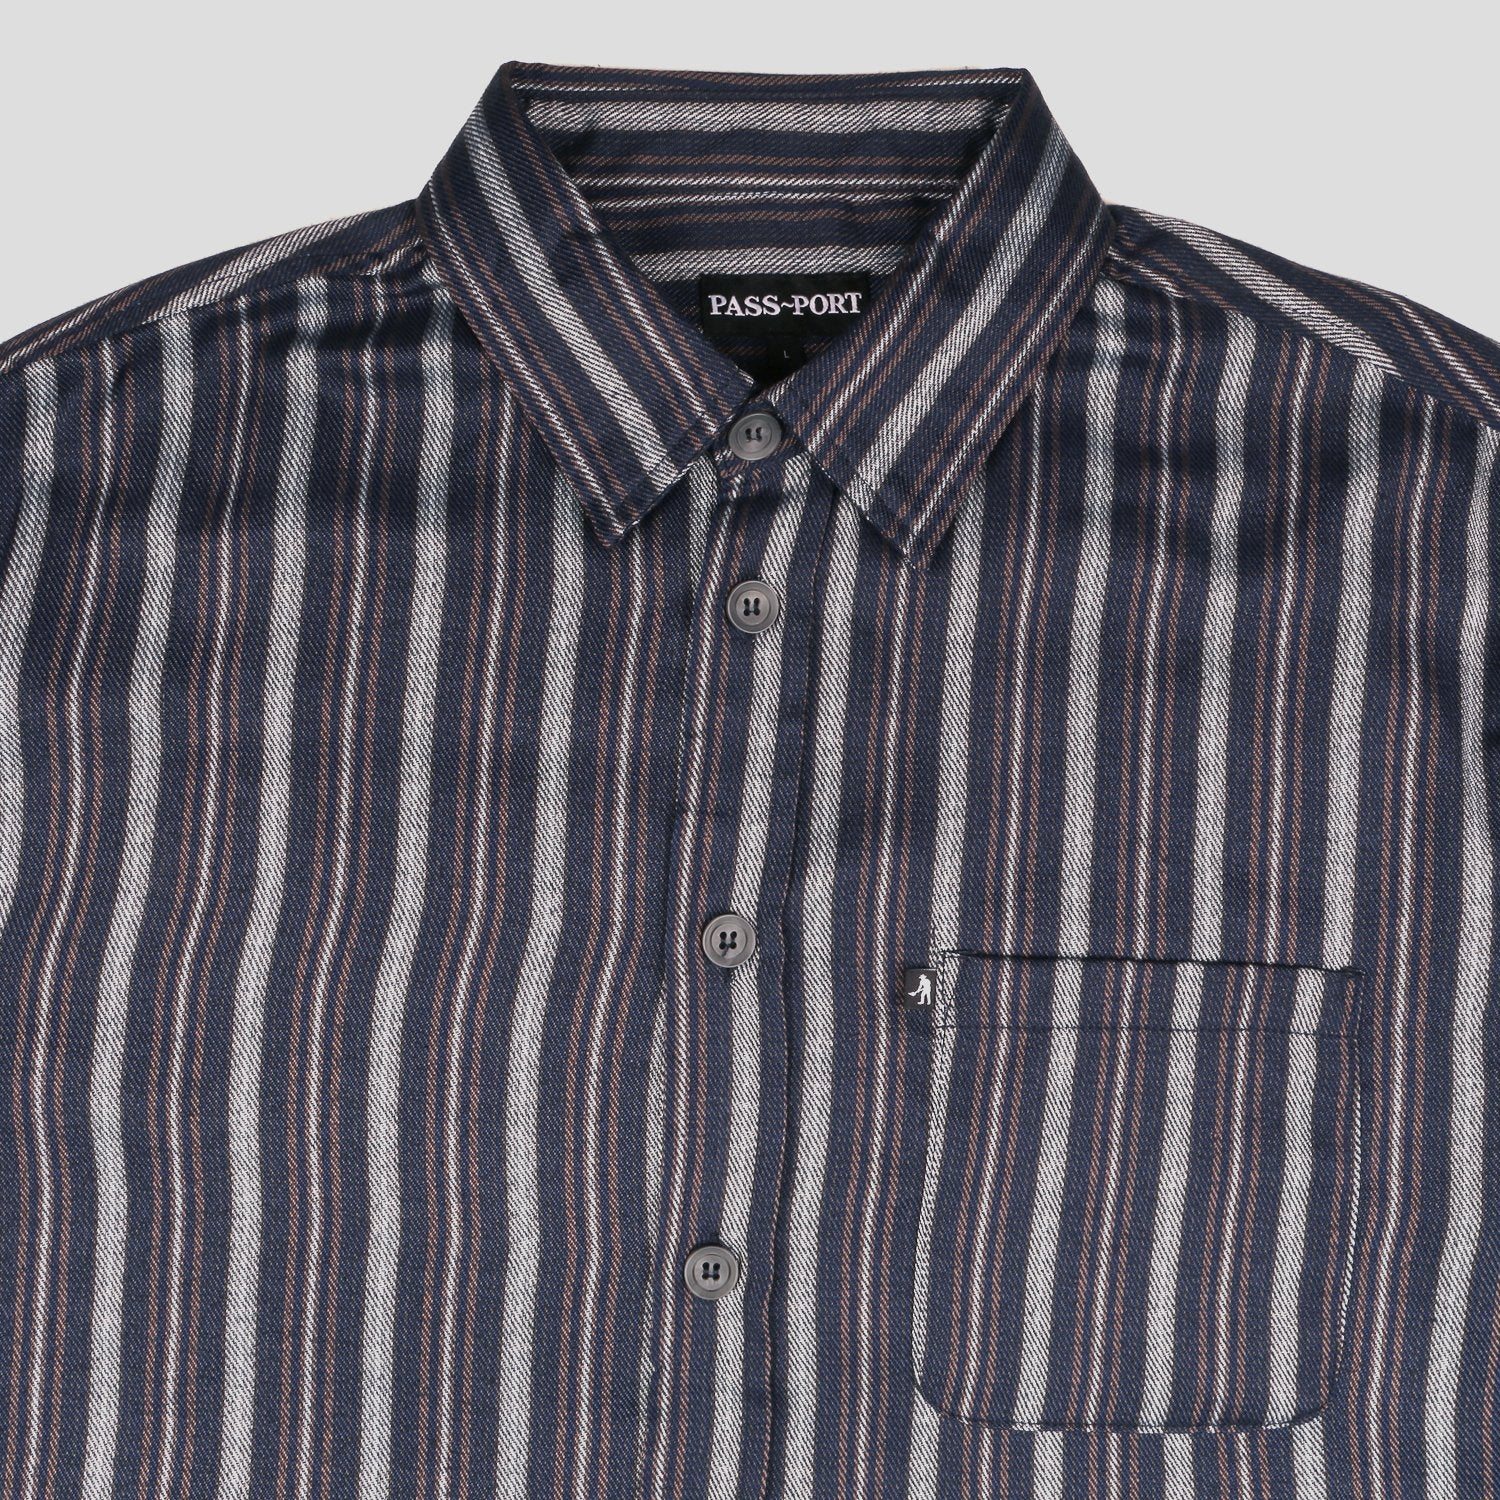 Workers Stripe Shirts - Shortsleeve (Navy)